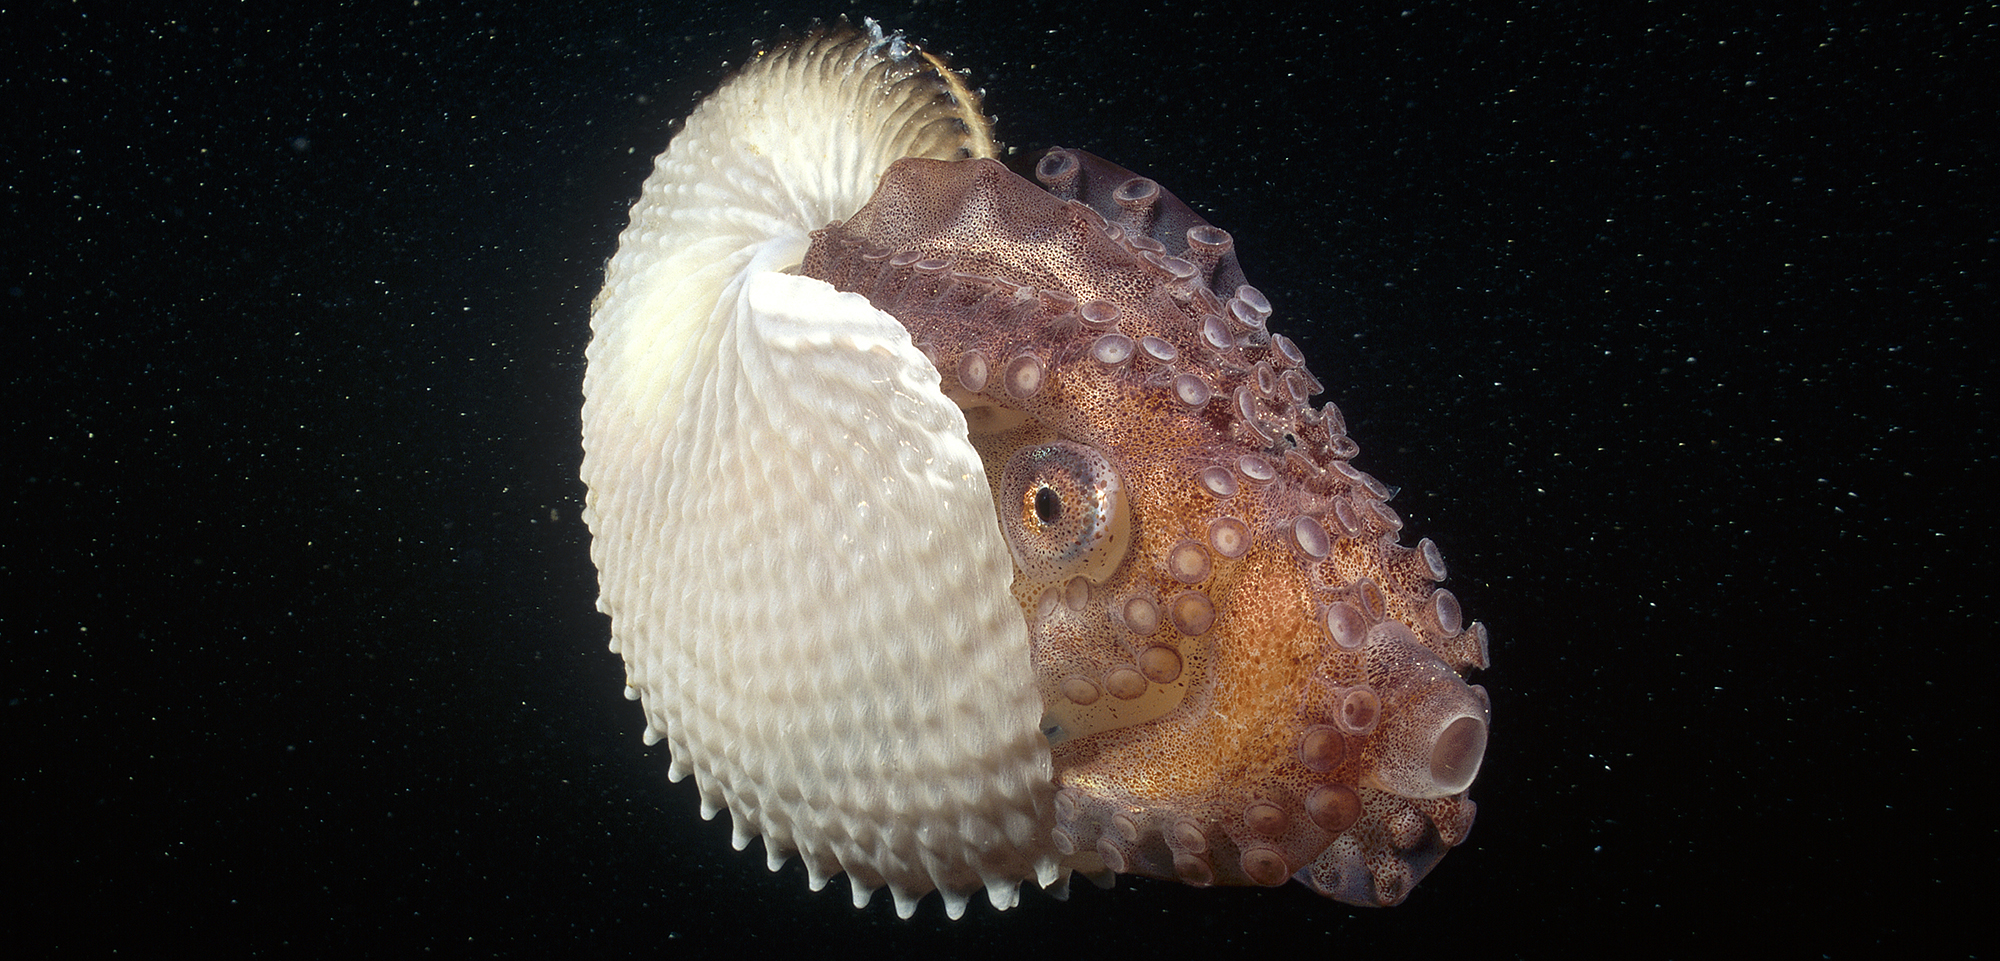 Some female paper nautiluses, shell included, can be more than half a meter long. Photo by Fred Bavendam/Minden Pictures/Corbis